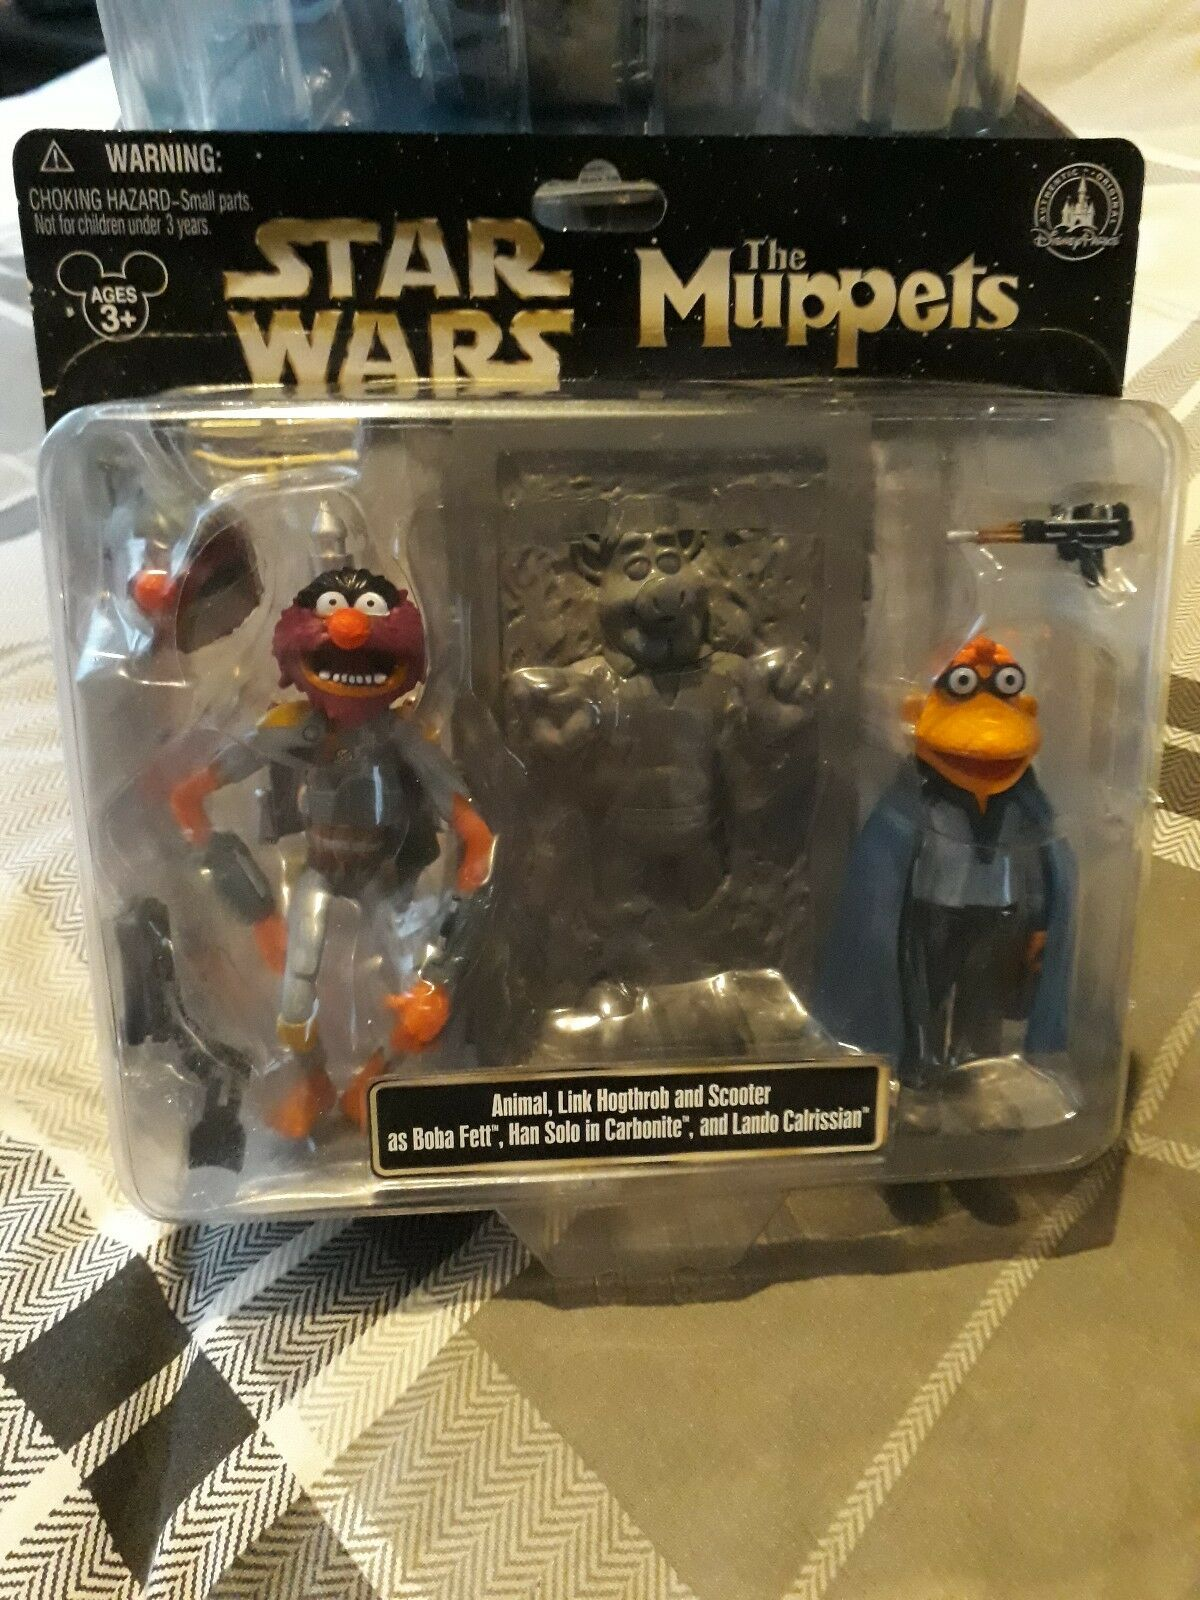 Star Wars Muppets Animal, Scooter And Link Muppet Set